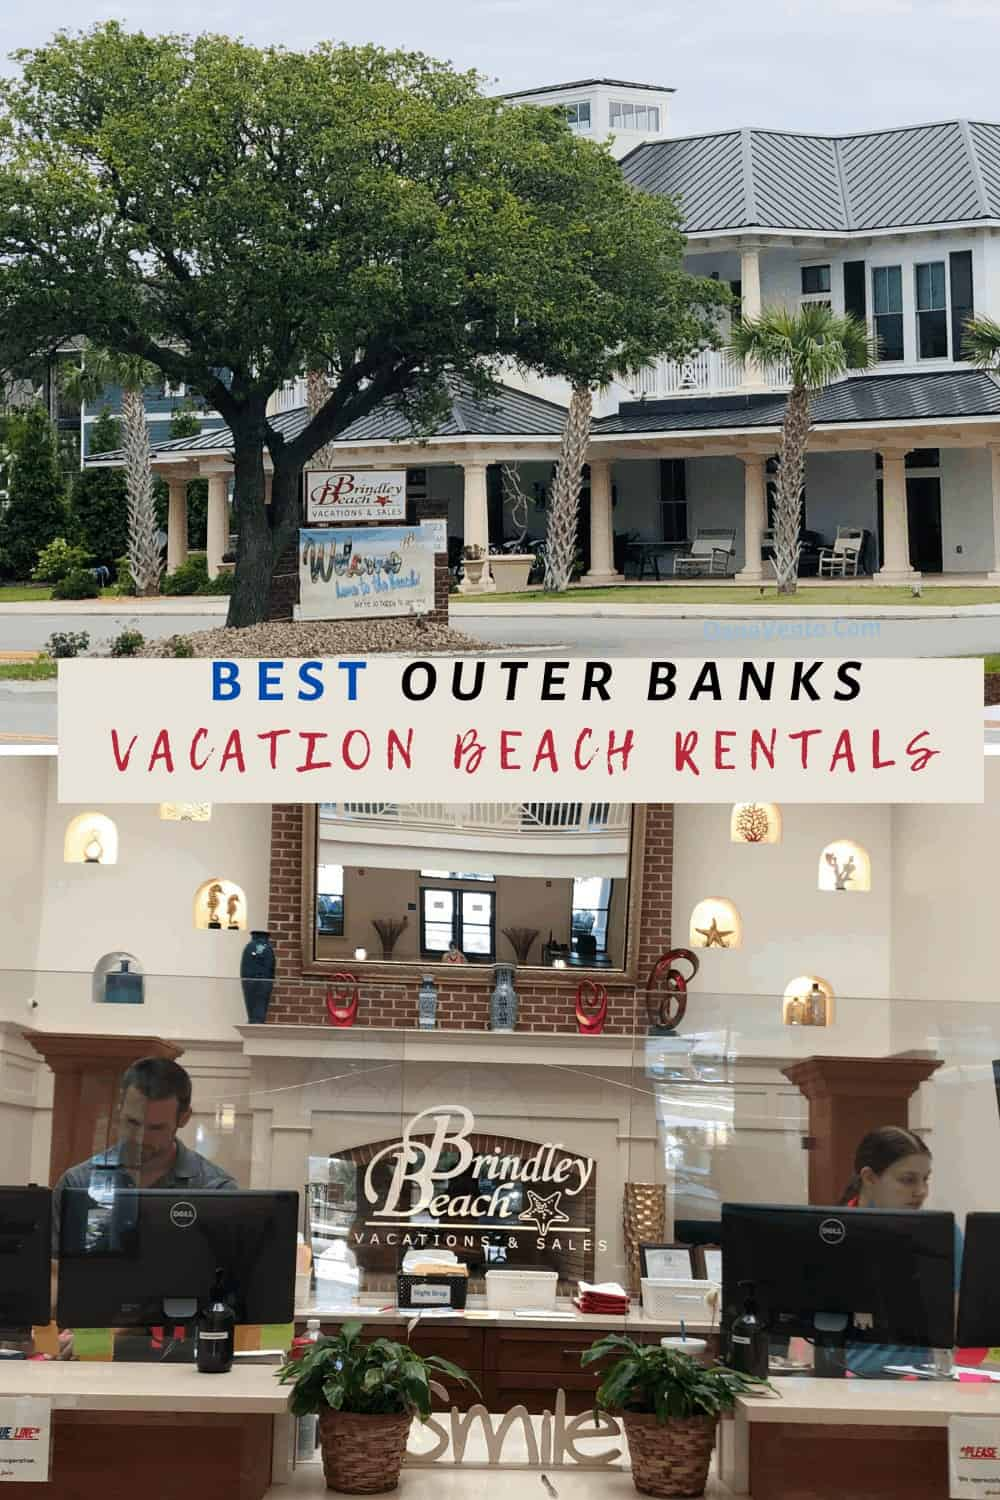 Vacation Specialists at Brindley Beach Vacations and Sales